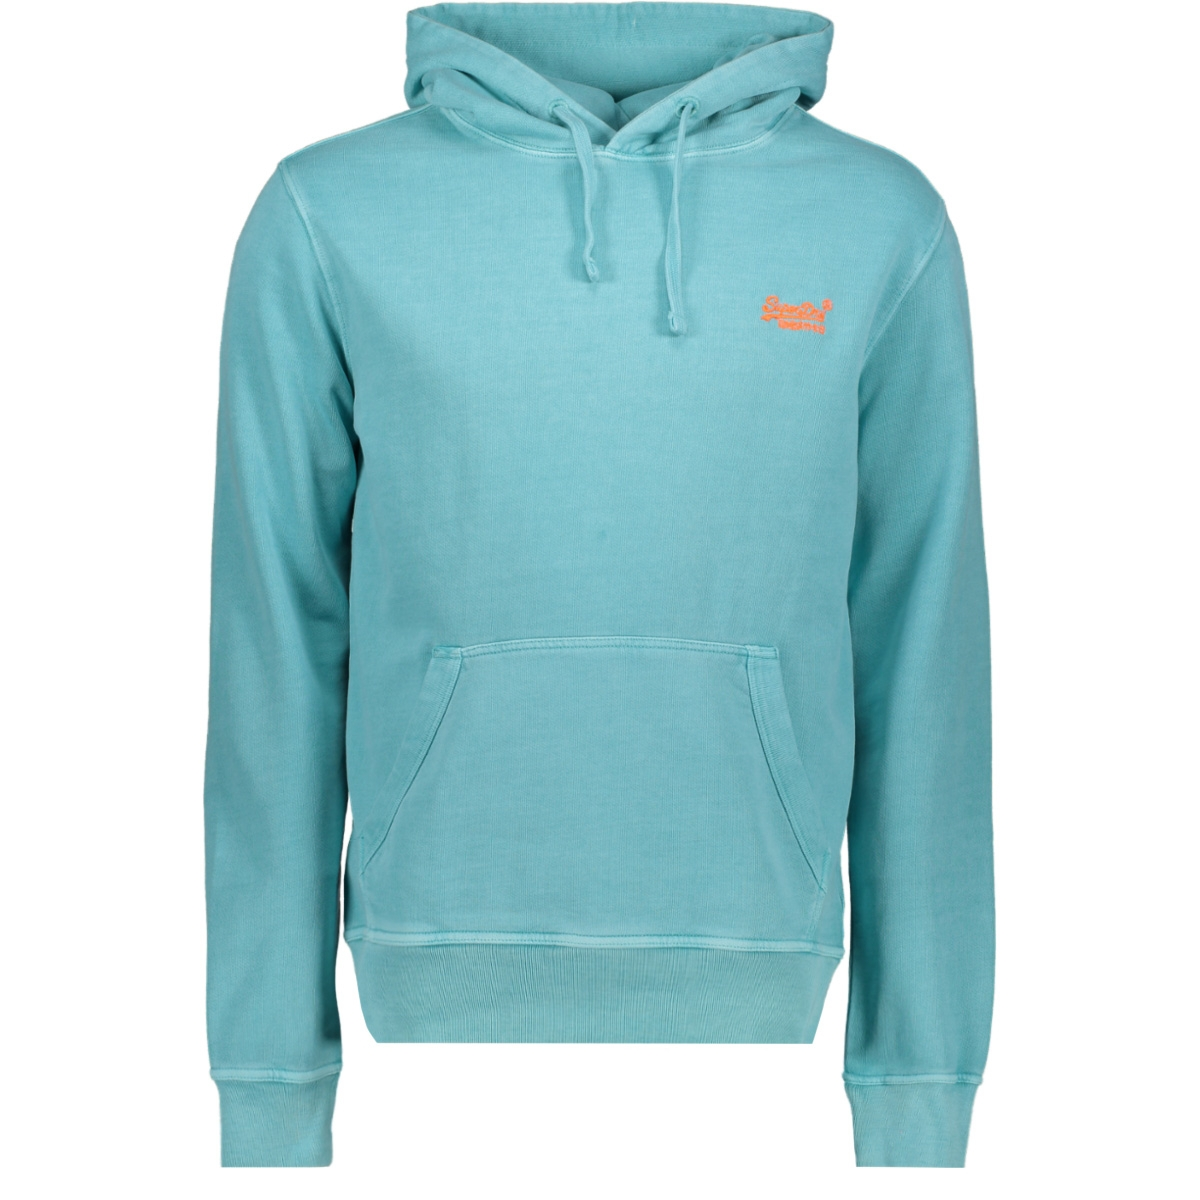 ol pastelline hood m2010044a superdry sweater pastelline turquoise